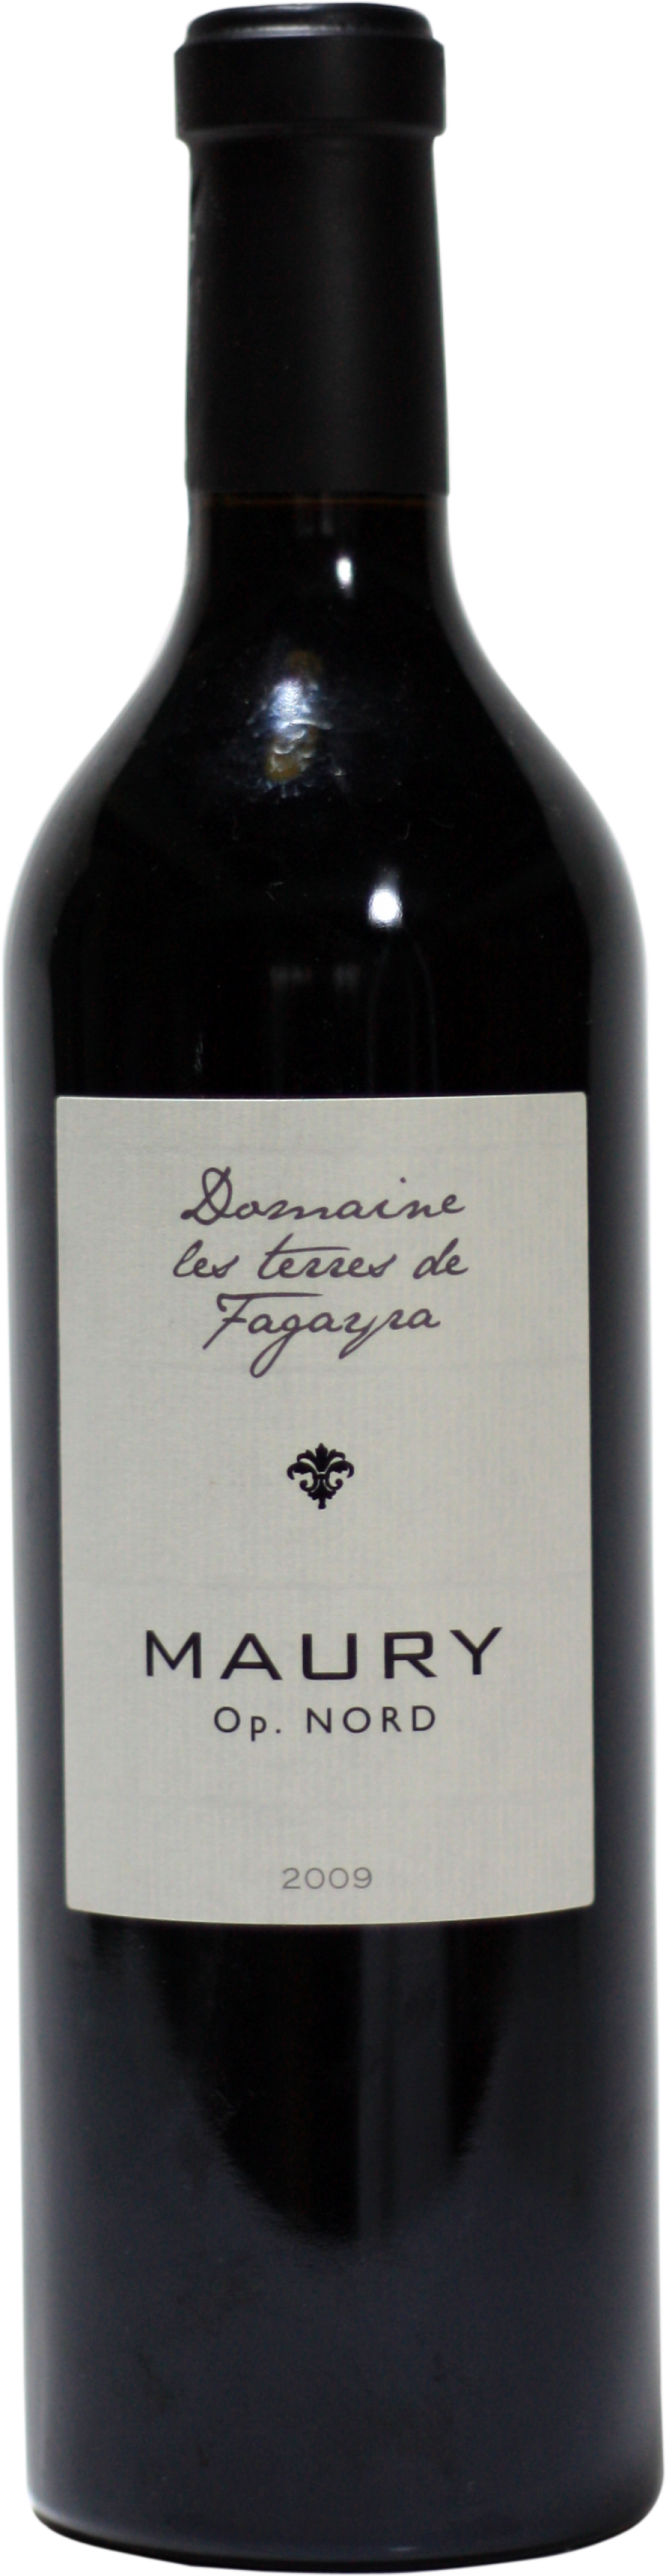 files/images/wines/France/domaine-les-terres-de-fagayra-rousillon/Muary Op Nord.png